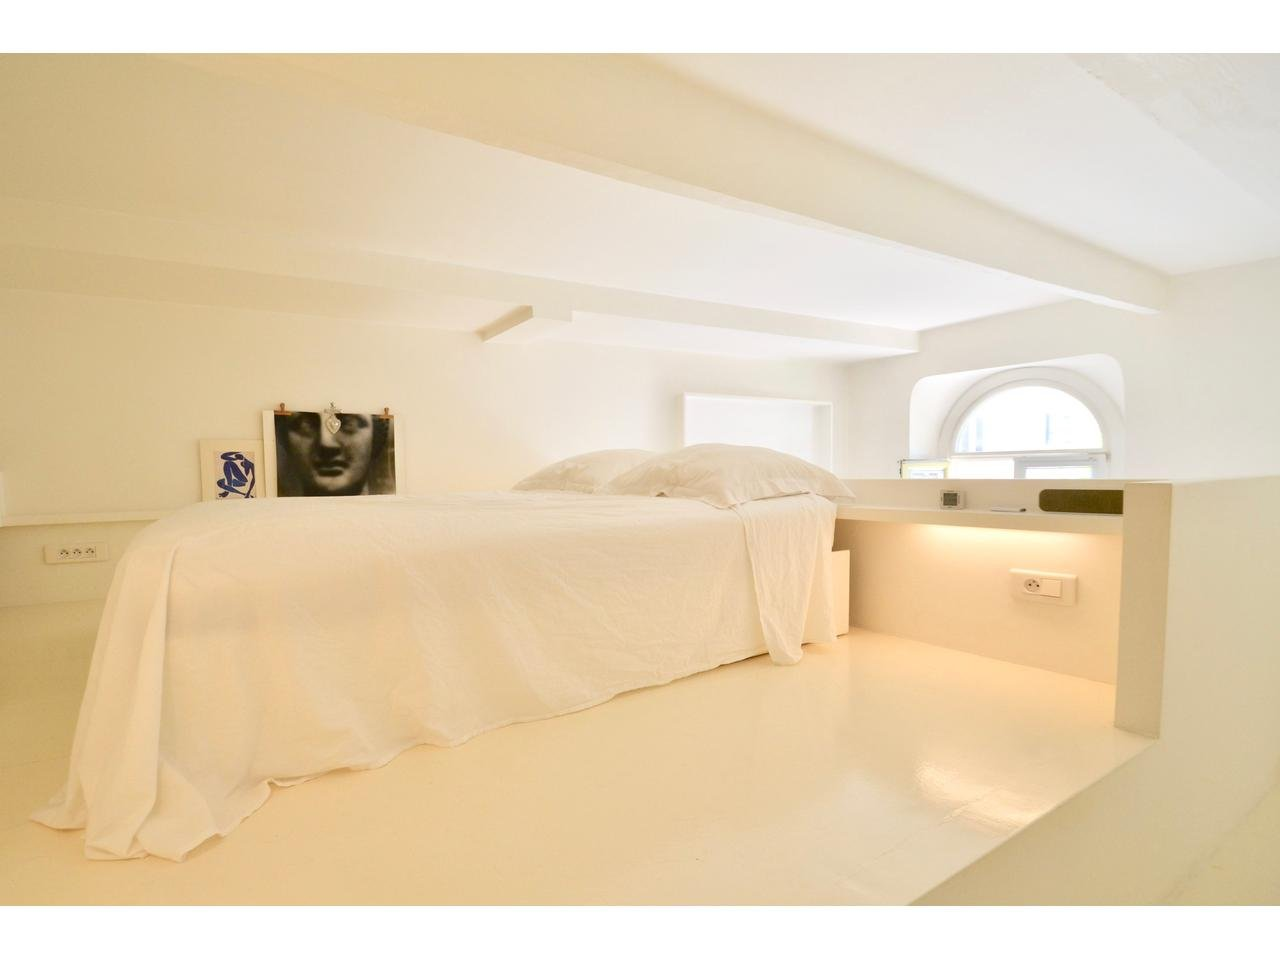 Appartement  2 Rooms 23m2  for sale   279 000 €